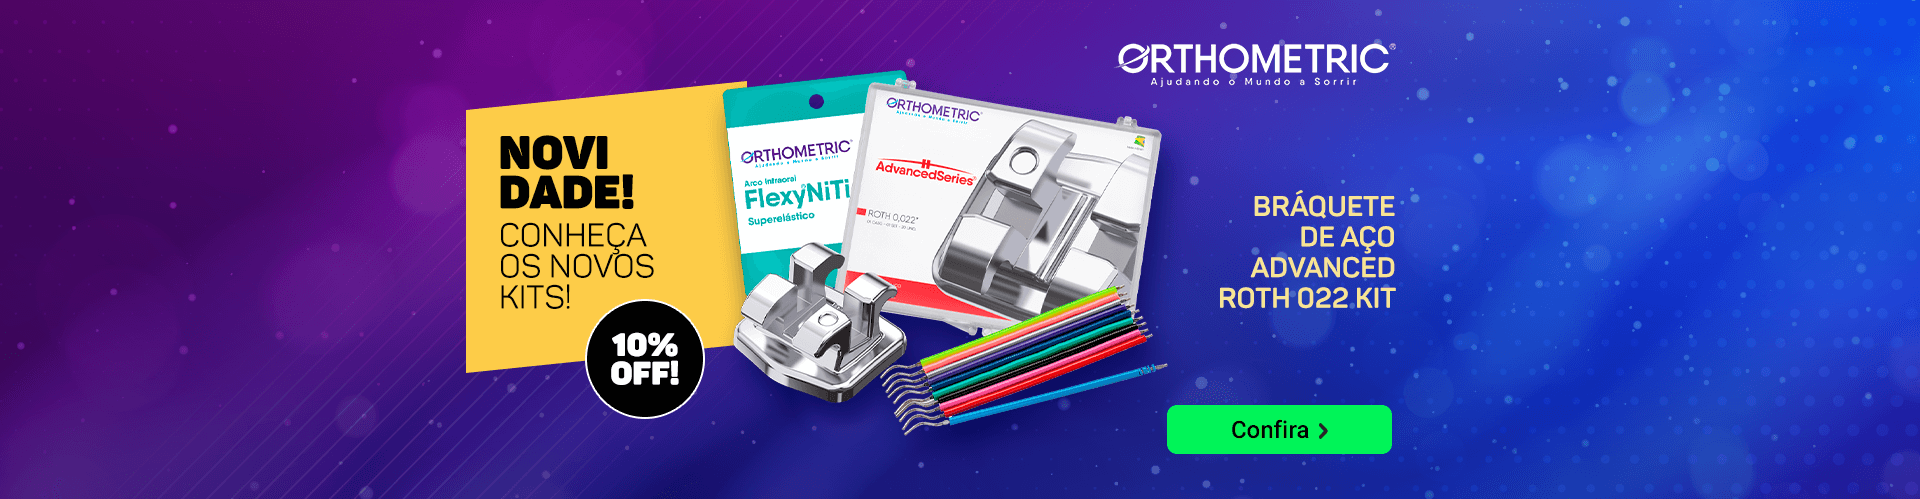 Novos Kits Orthometric com 10% OFF | Dental Cremer